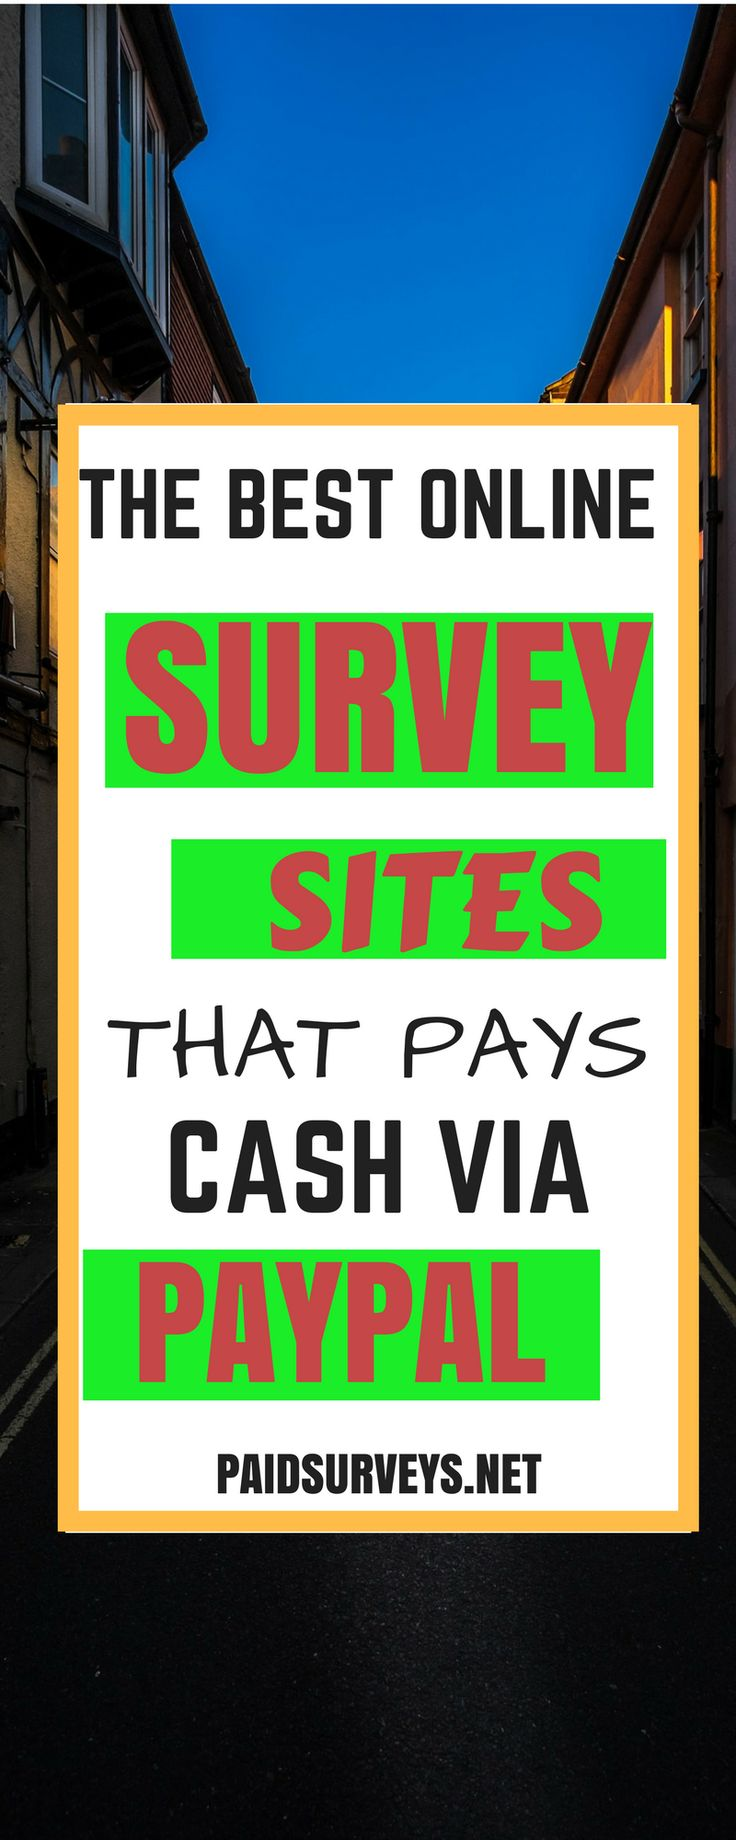 Paid surveys for cash are another way to earn money online and working from home. Learn how to earn extra money by taking surveys working from home. Check us out for more